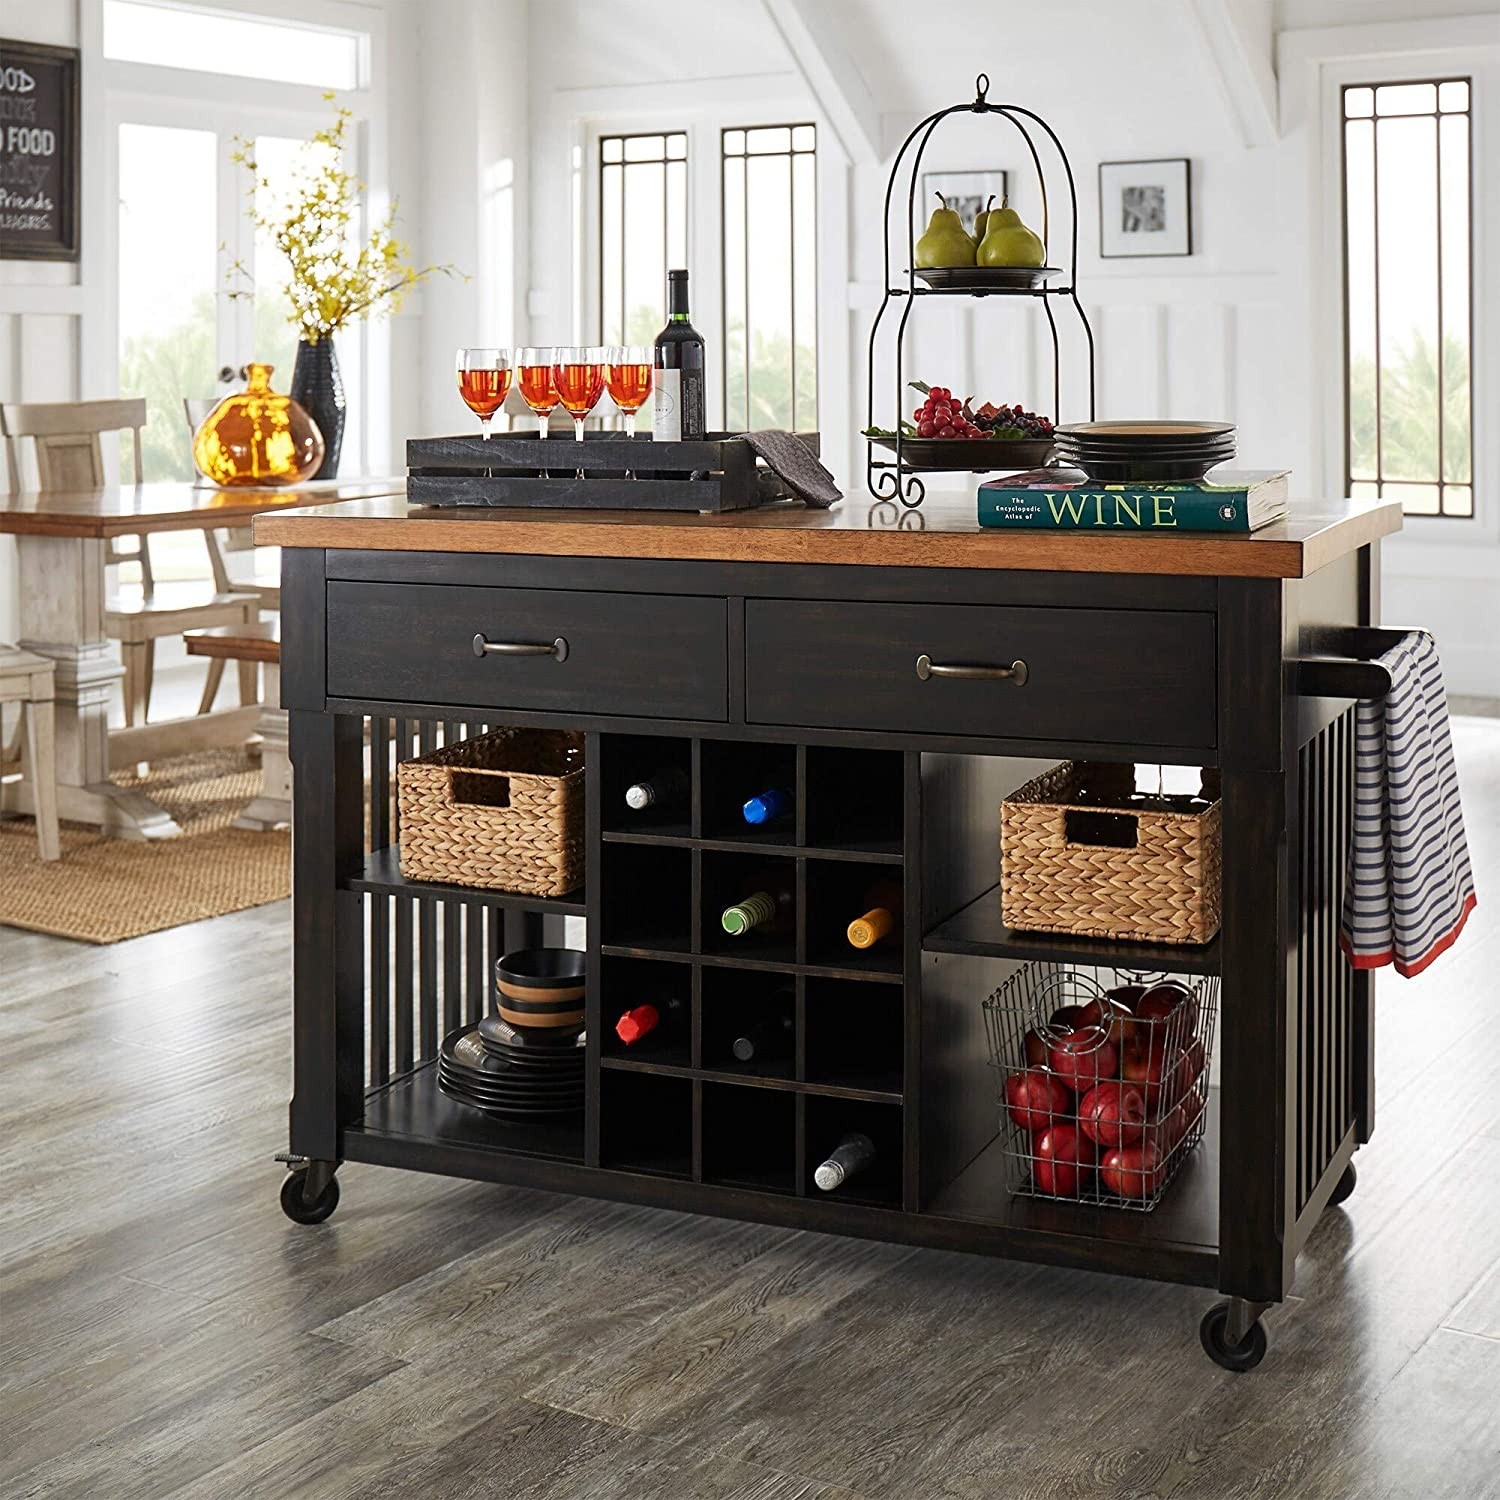 Inspire Q Eleanor Two-Tone Rolling Kitcn Island with Wine Rack by Classic Black